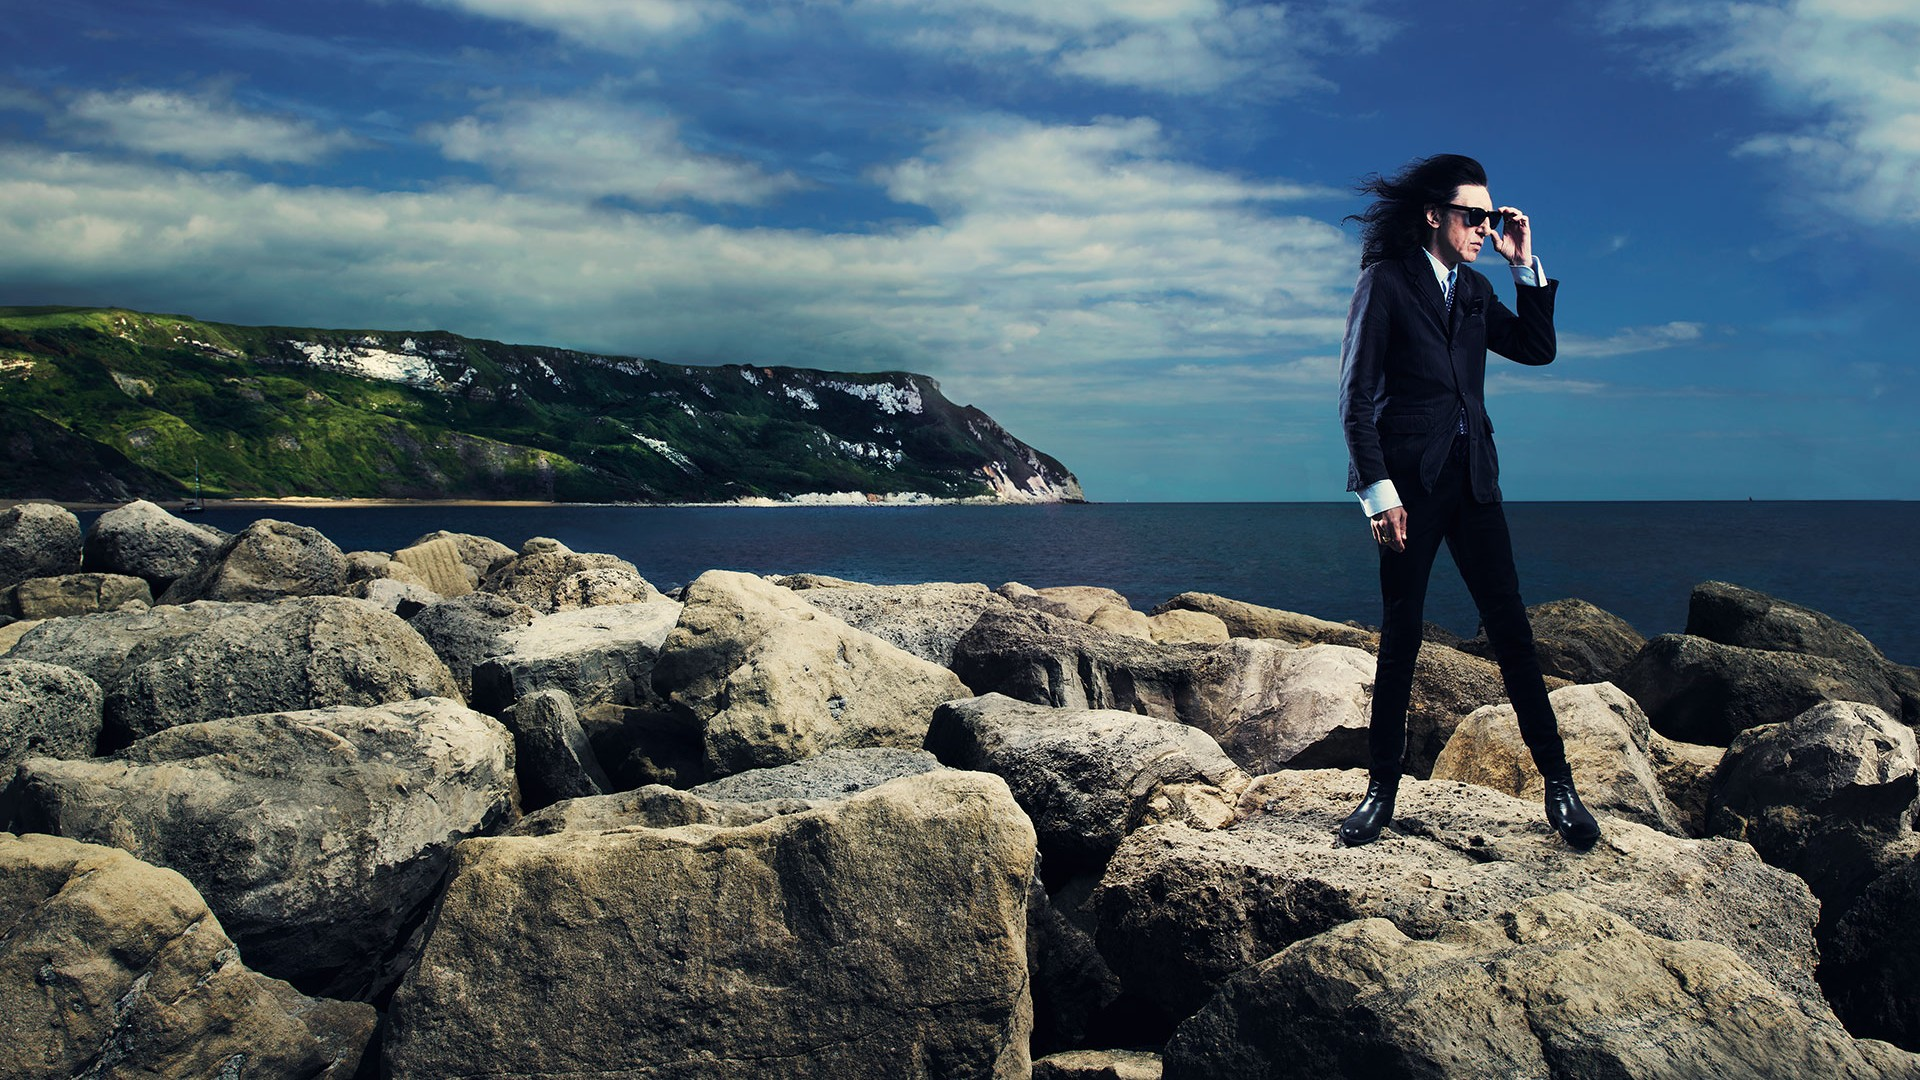 John Cooper Clarke photography by Tom Oldham